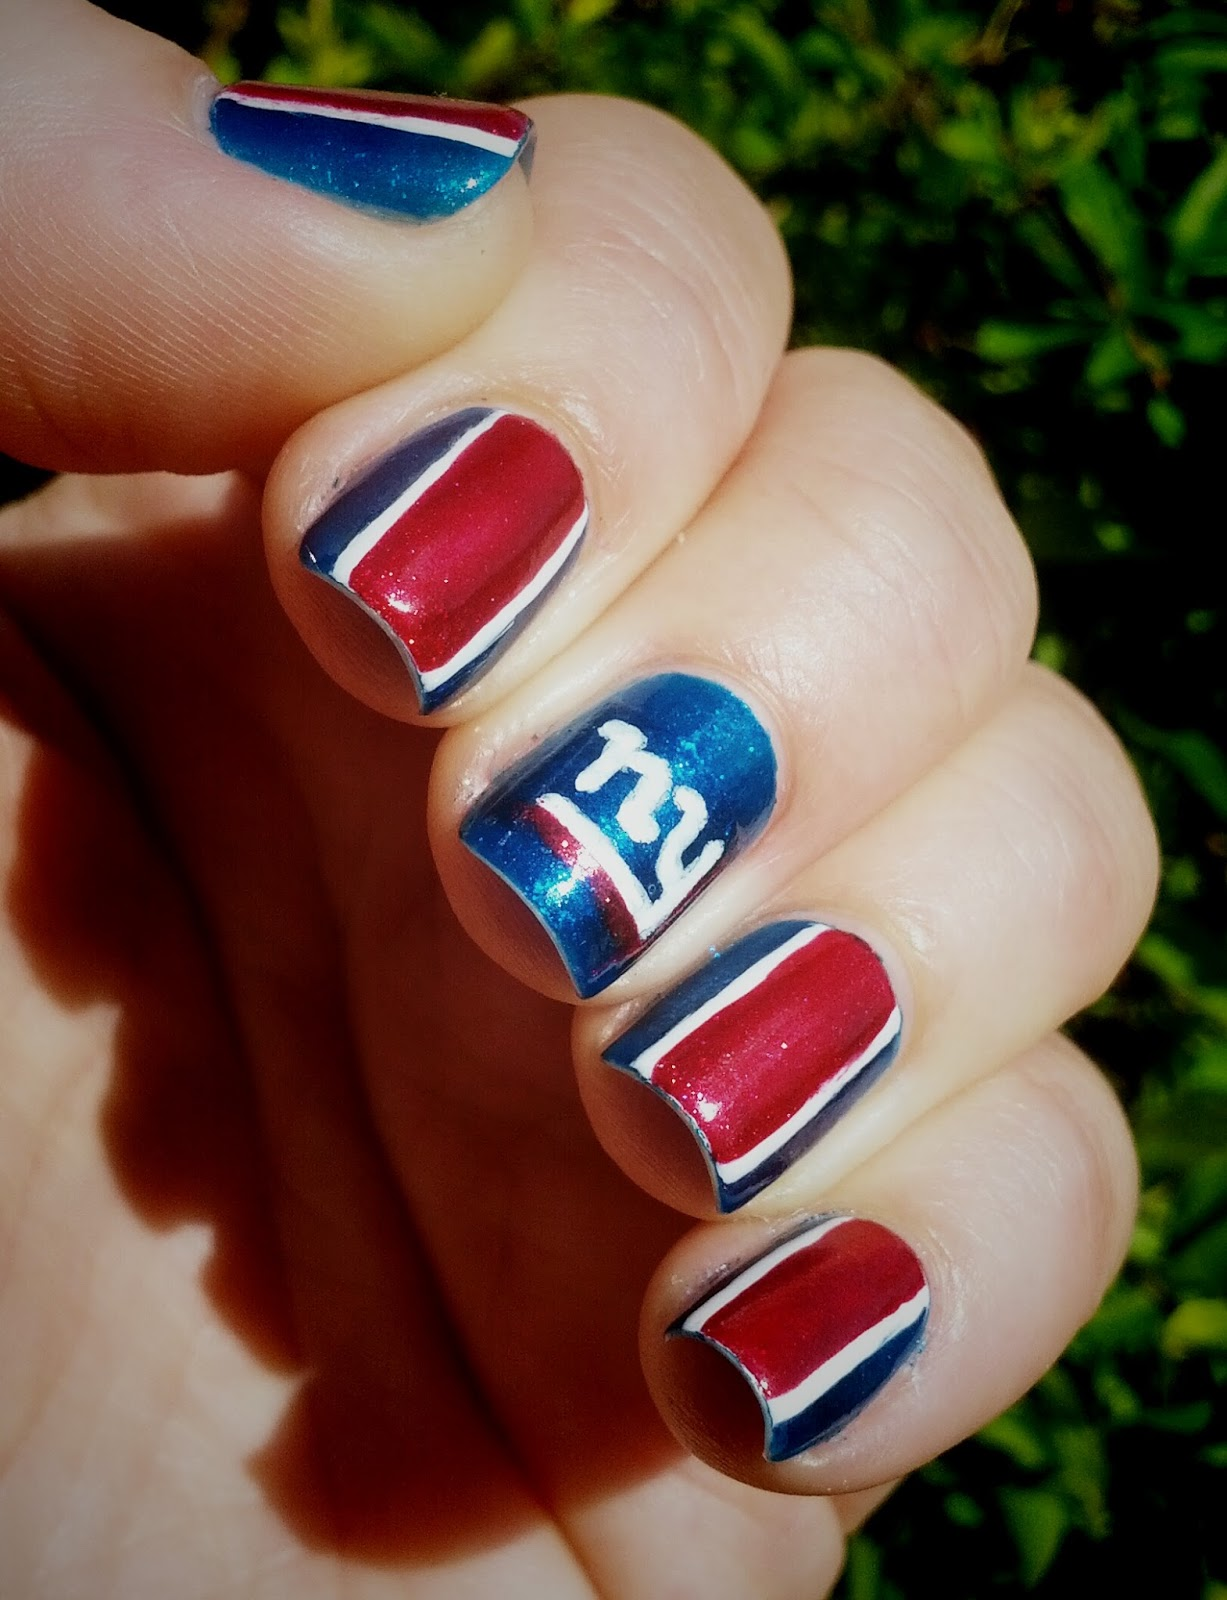 I Love The Giants As Well And Fully Support His Temporary Insanity On Sundays Which Is Why Did A Ny Manicure Last Week For Season Opening